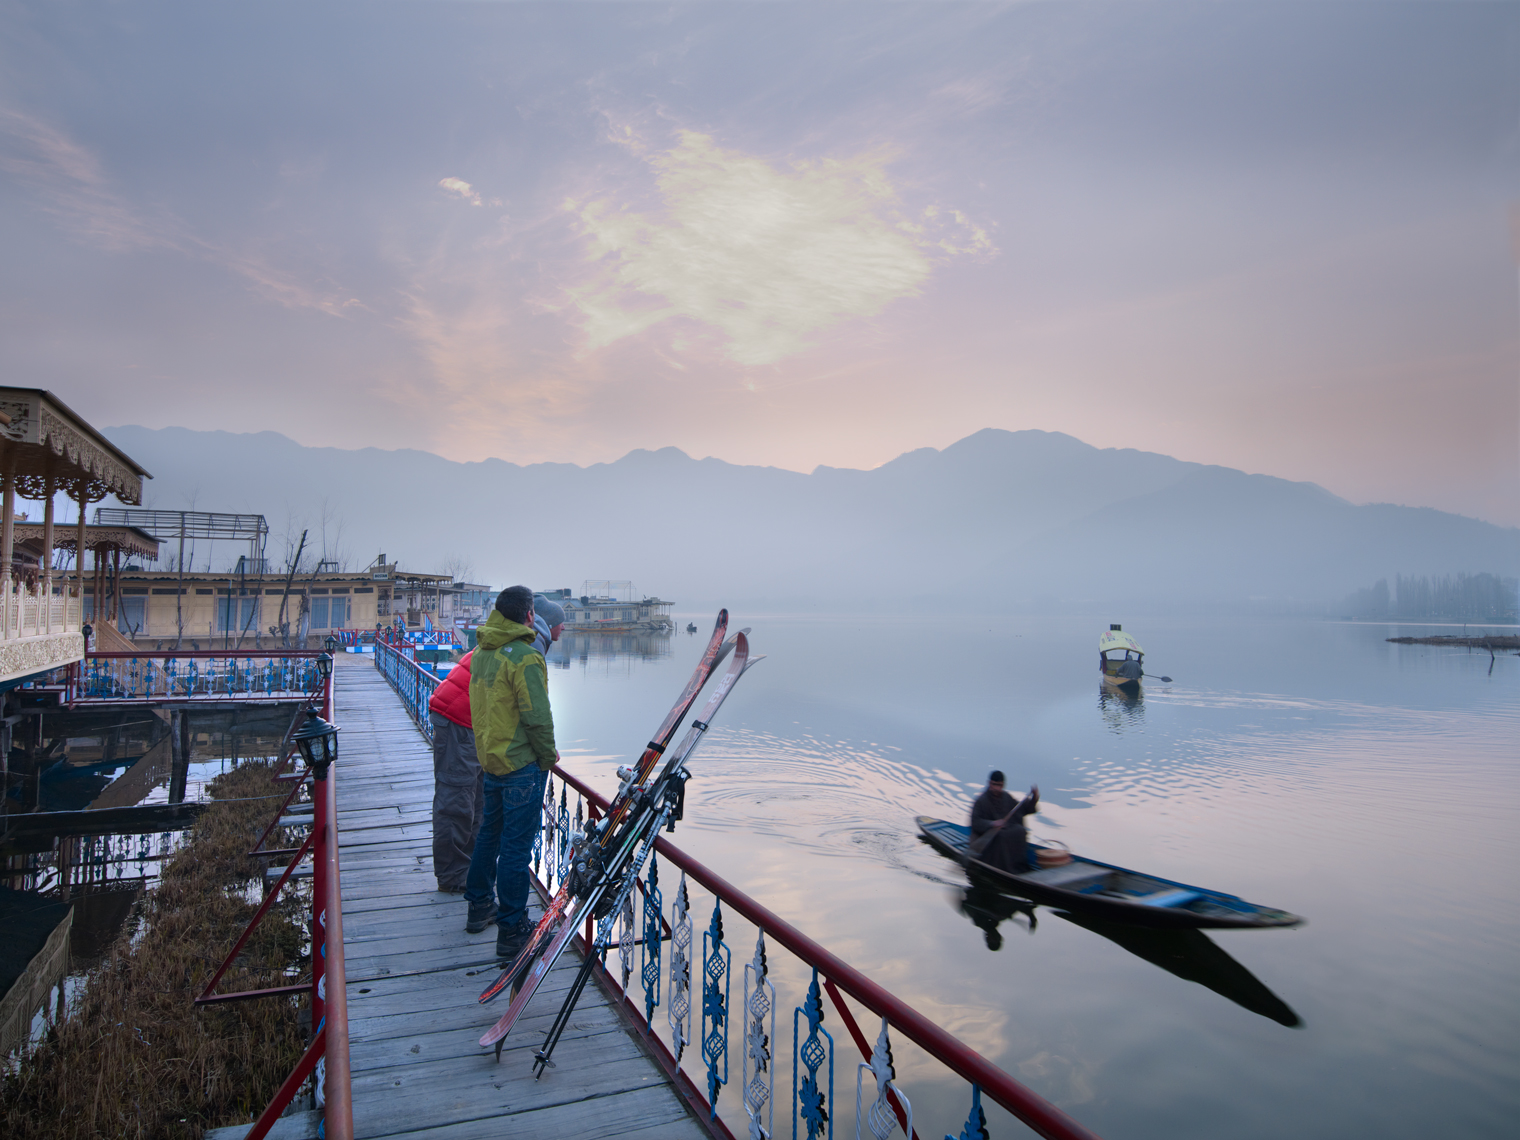 Jon Wyatt Photography - Dhal Lake, Srinagar, Kashmir